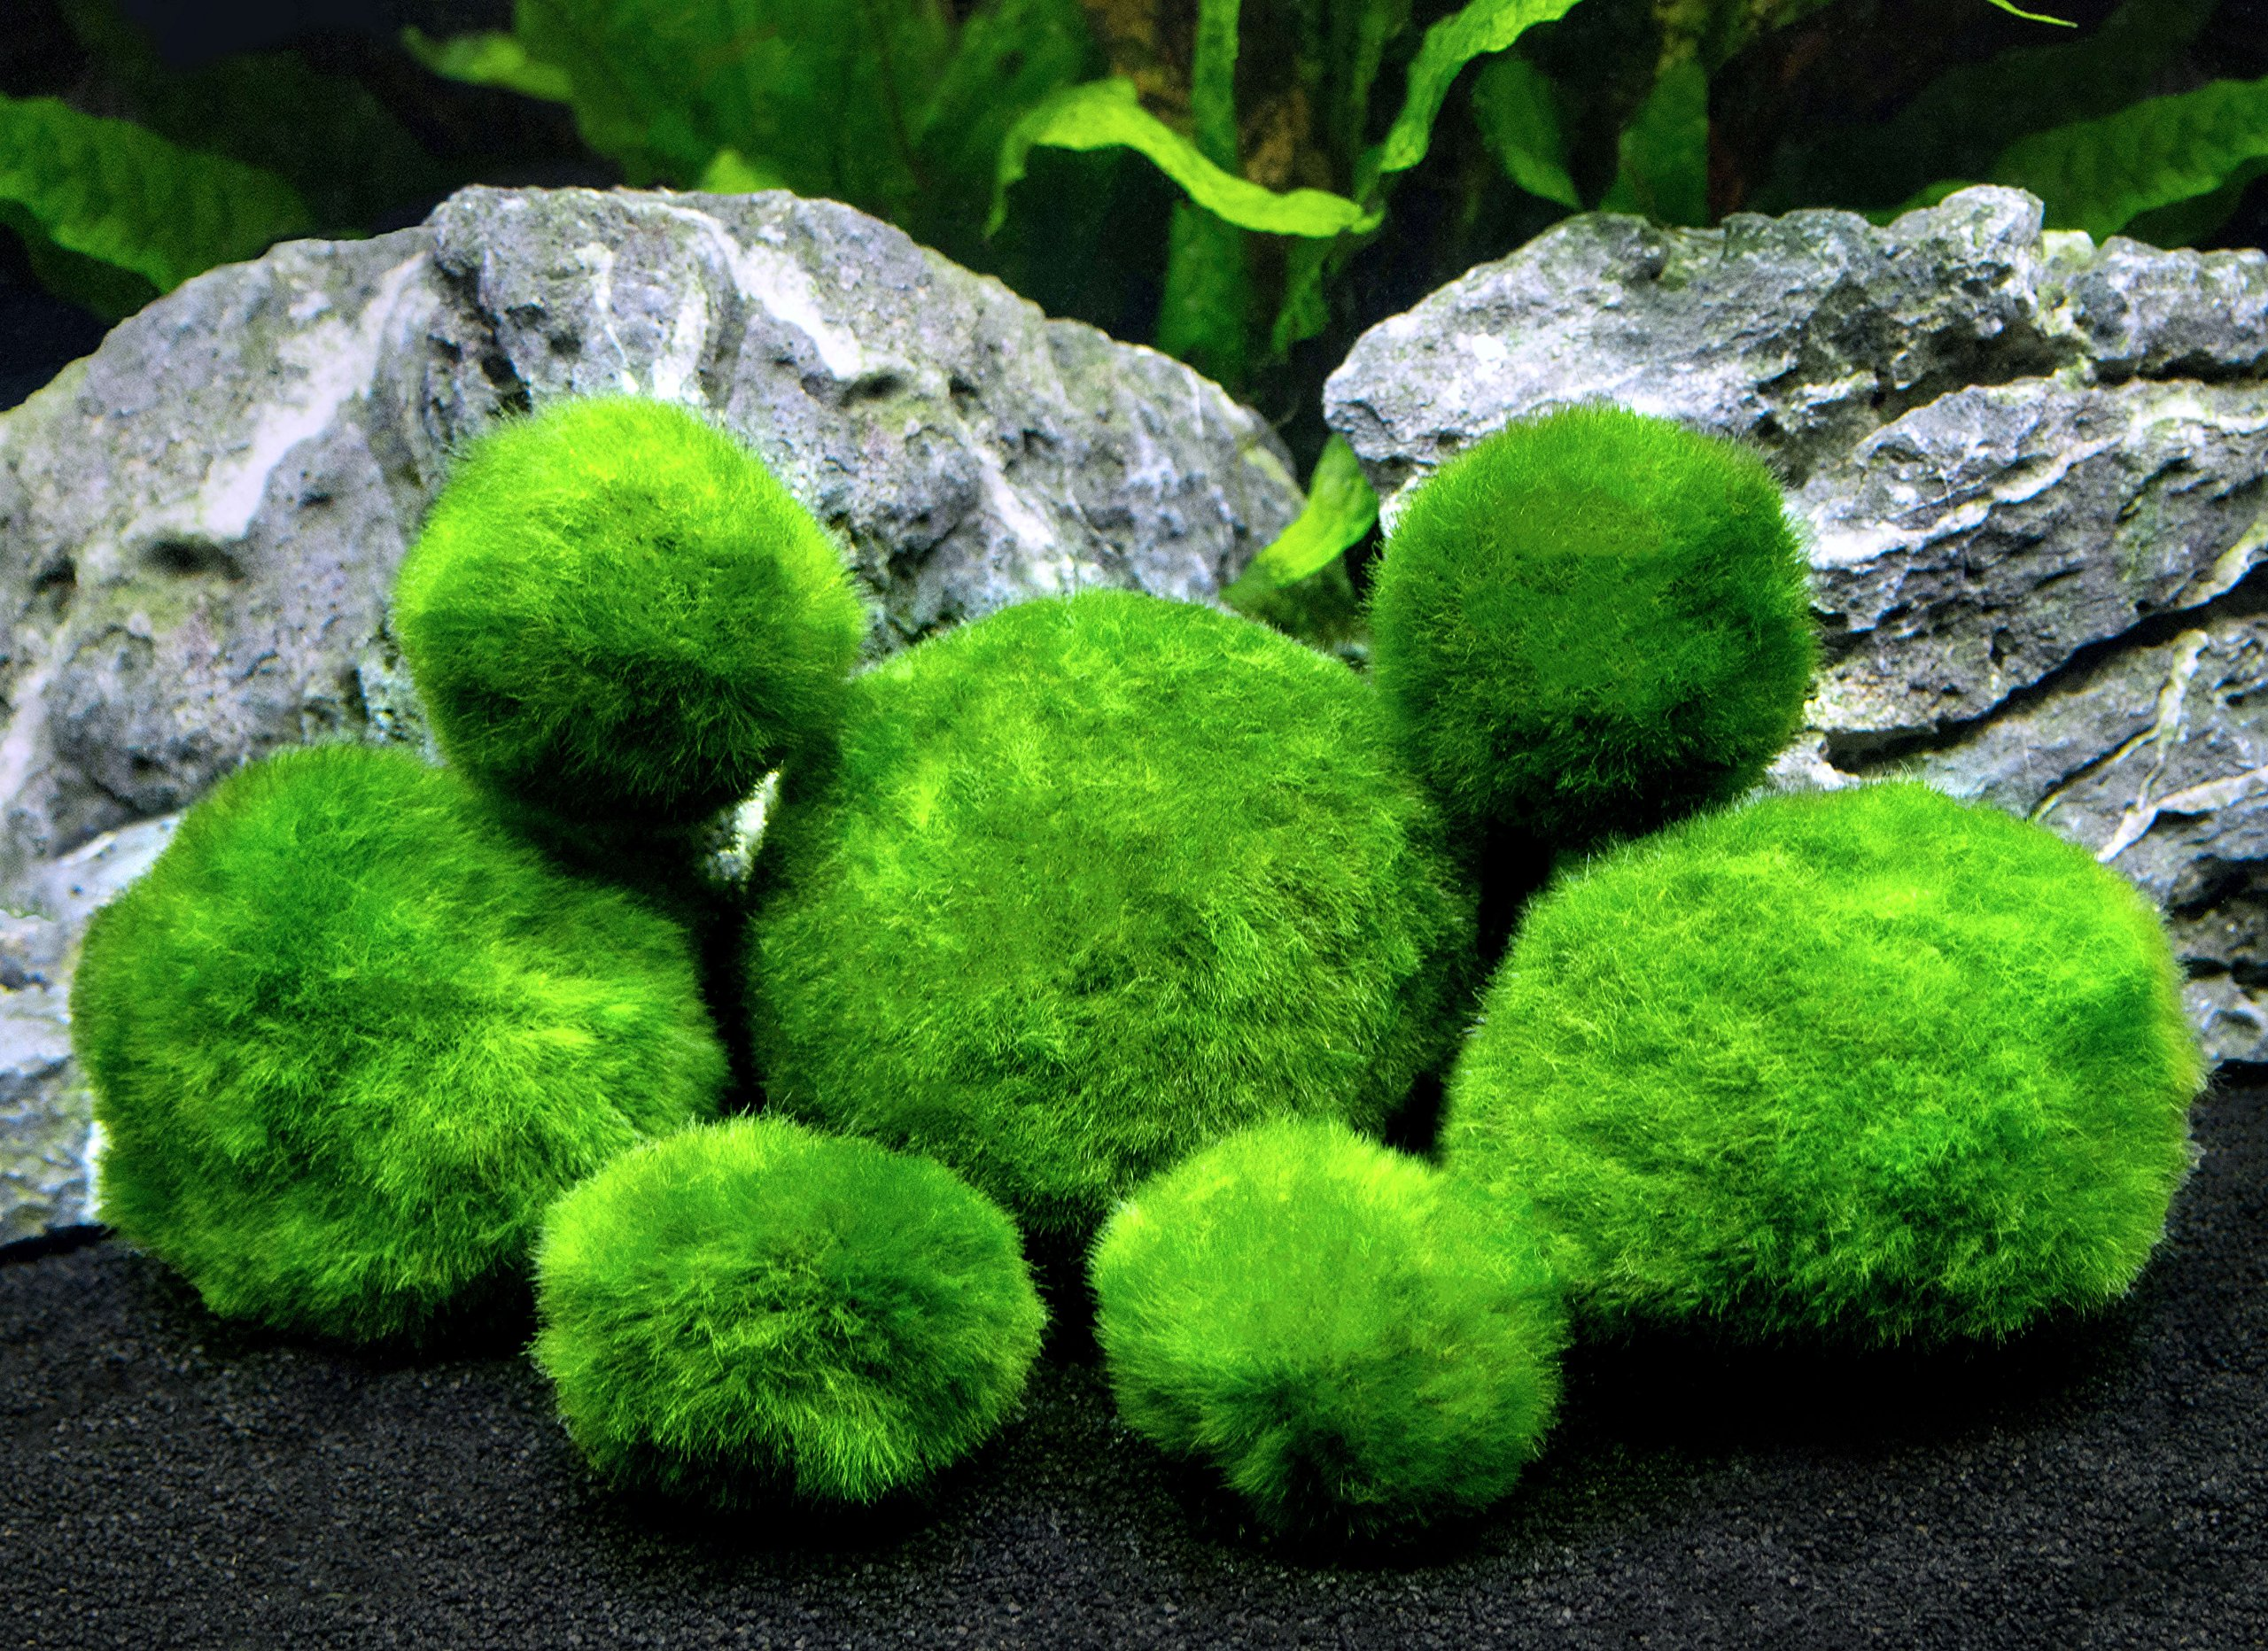 6 Marimo Moss Ball Variety Pack - 4 Different Sizes of Premium Quality Marimo from Giant 2.25 Inch to Small 1 Inch - World's Easiest Live Aquarium Plant - Sustainably Harvested and All-Natural by Aquatic Arts